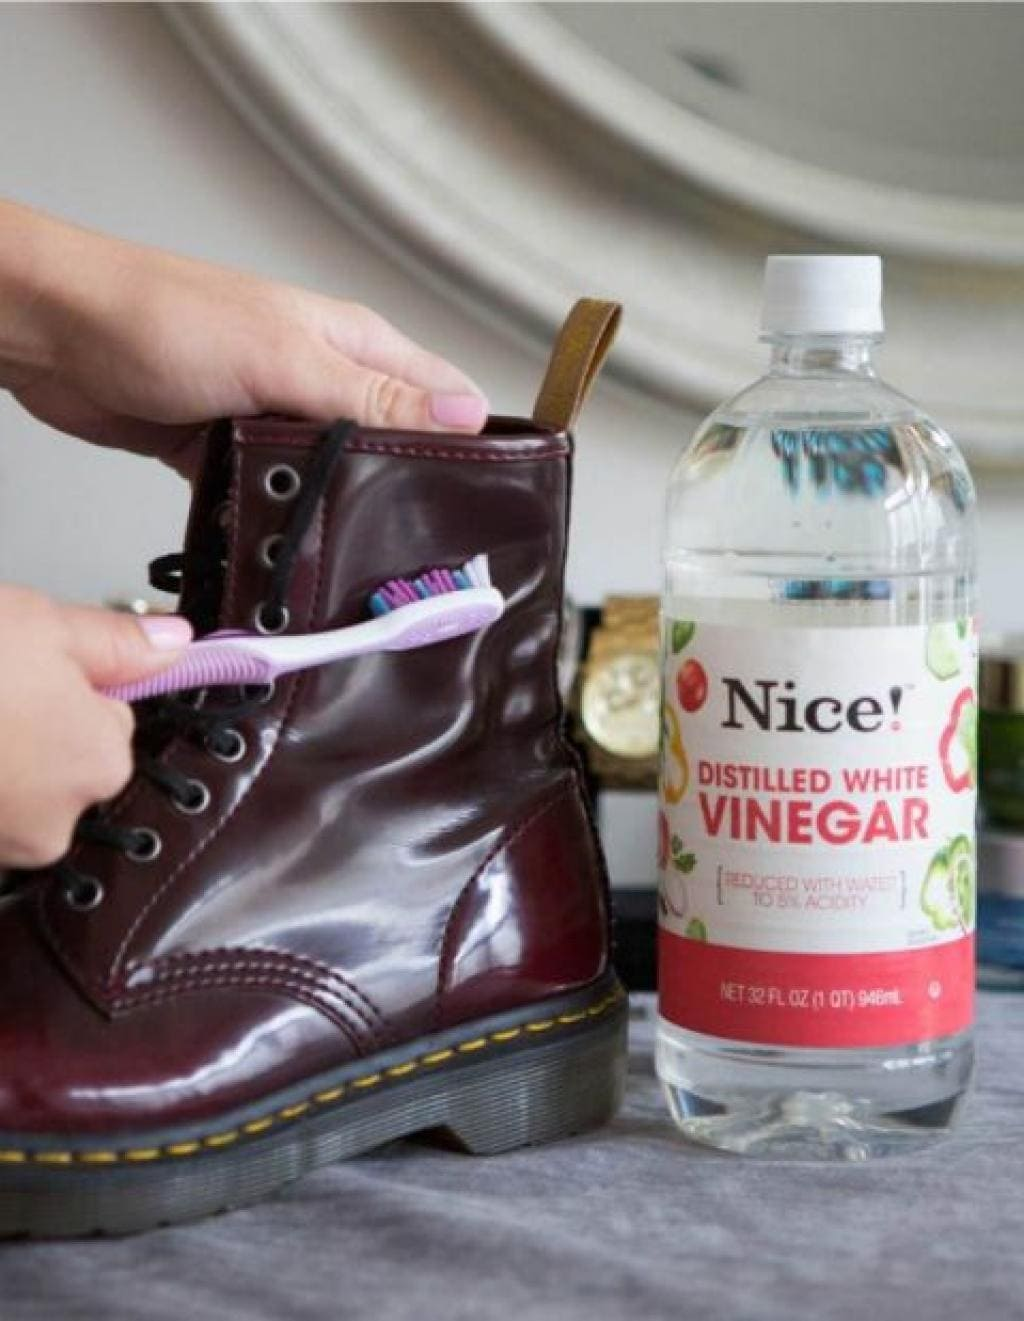 Shoes, vinegar, and a toothbrush